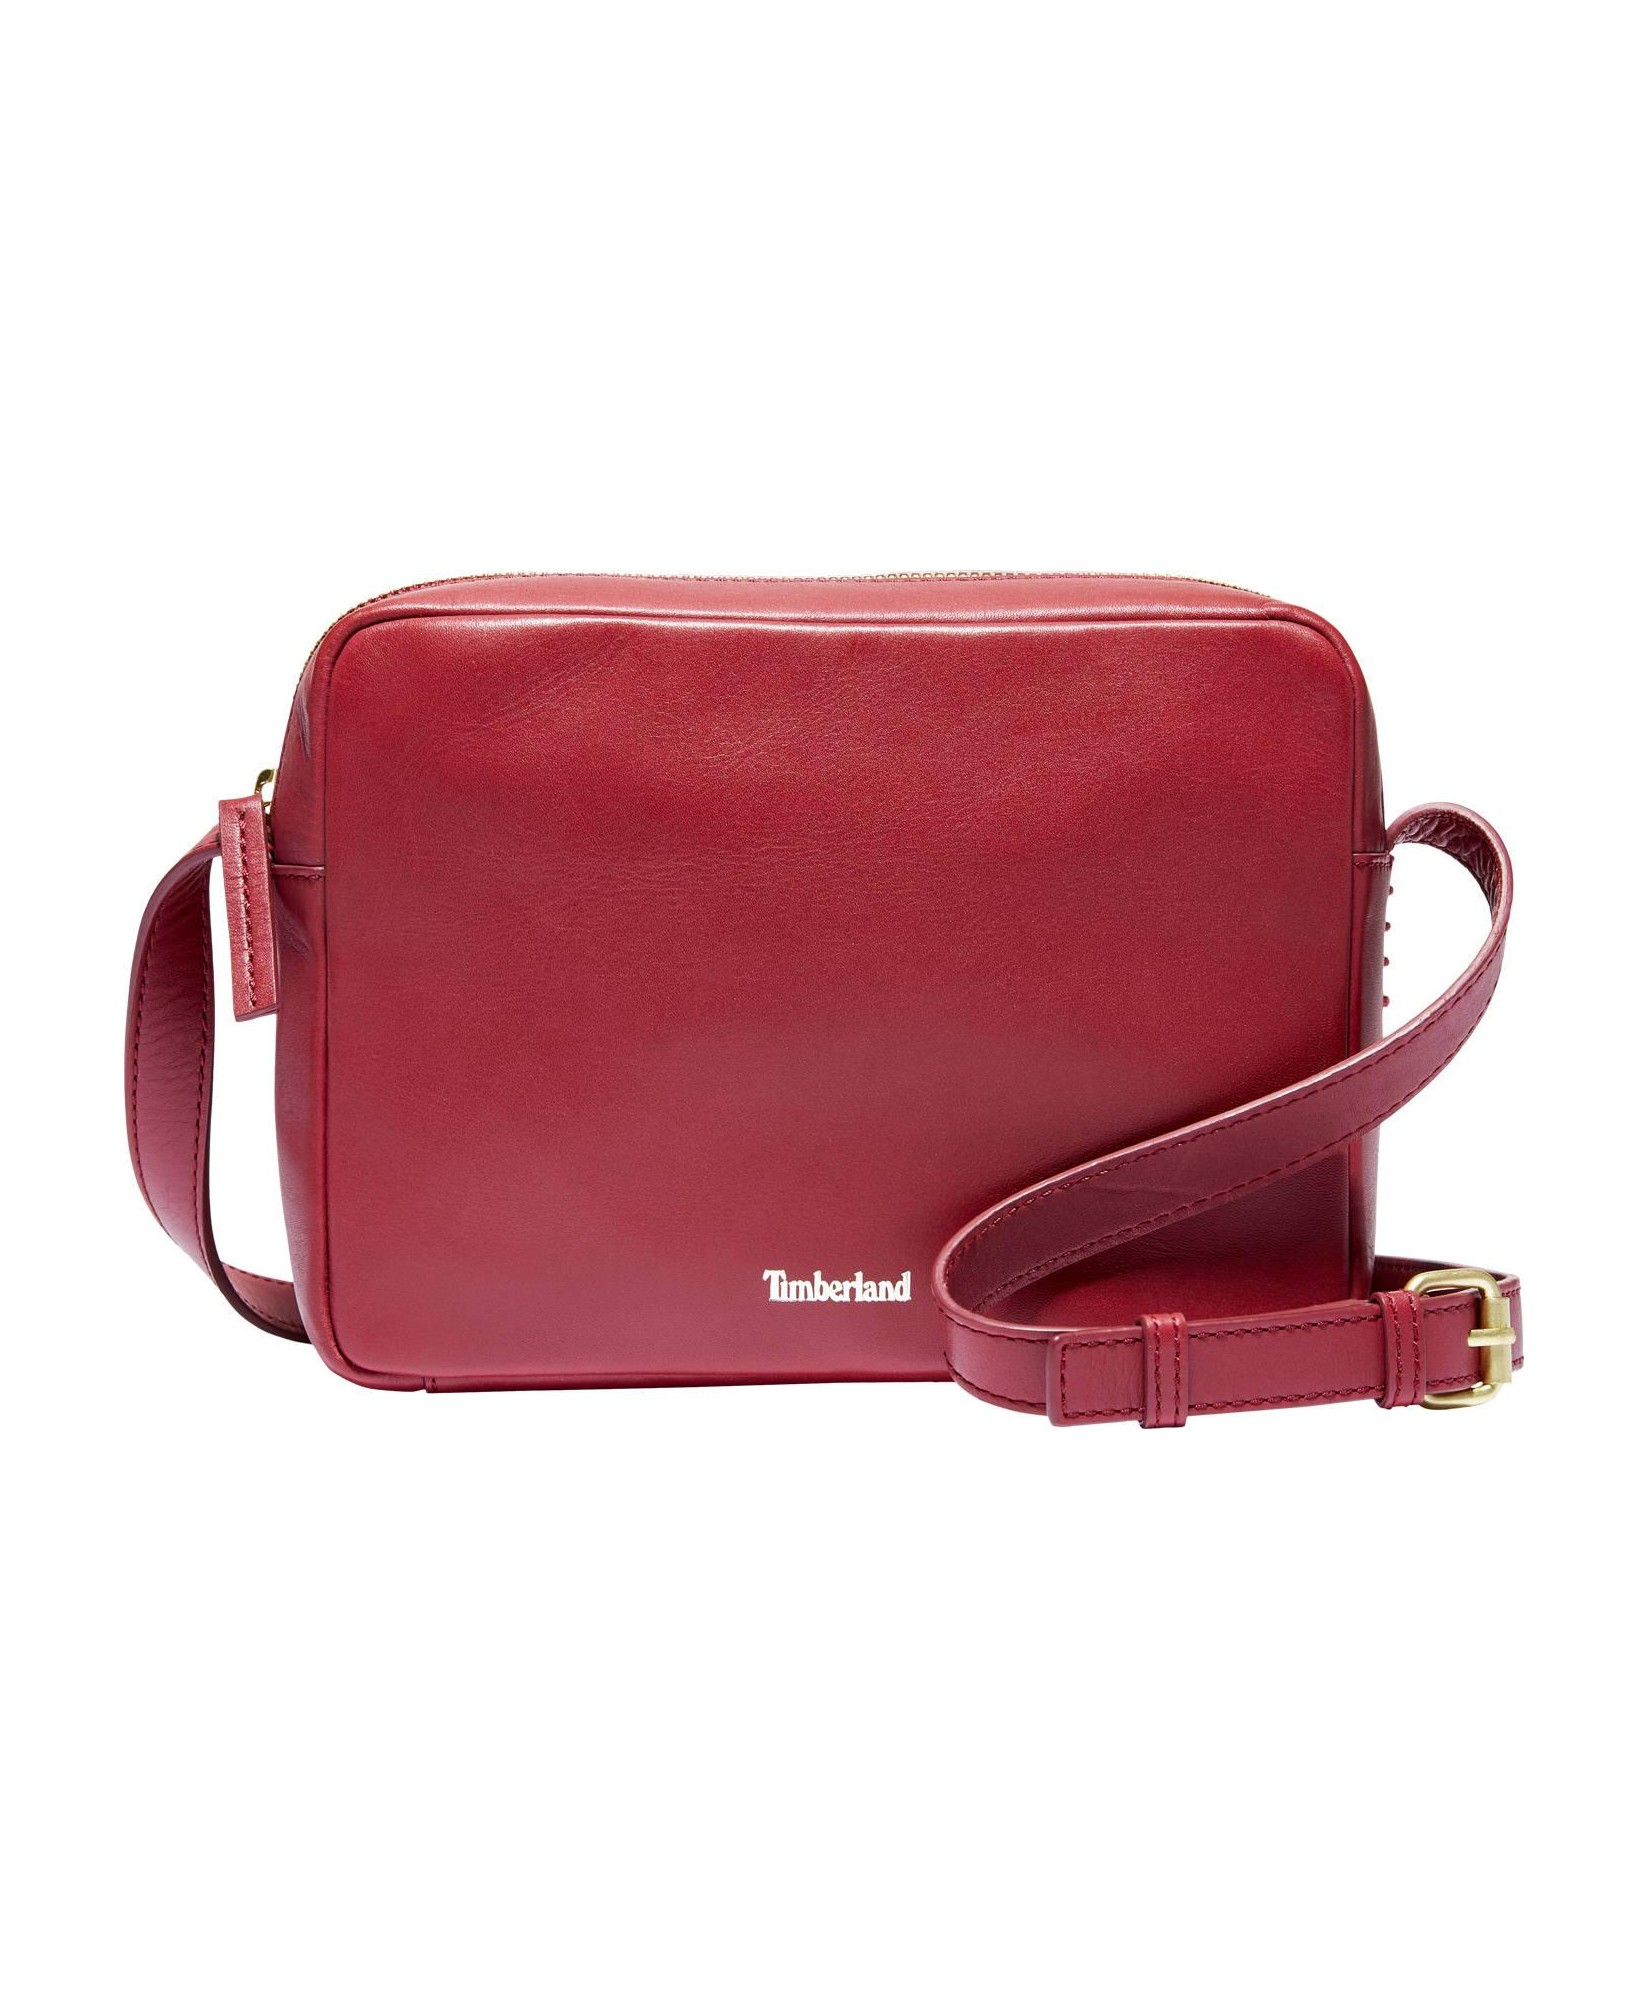 BOLSO ROSECLIFF BOLSO ROSECLIFF